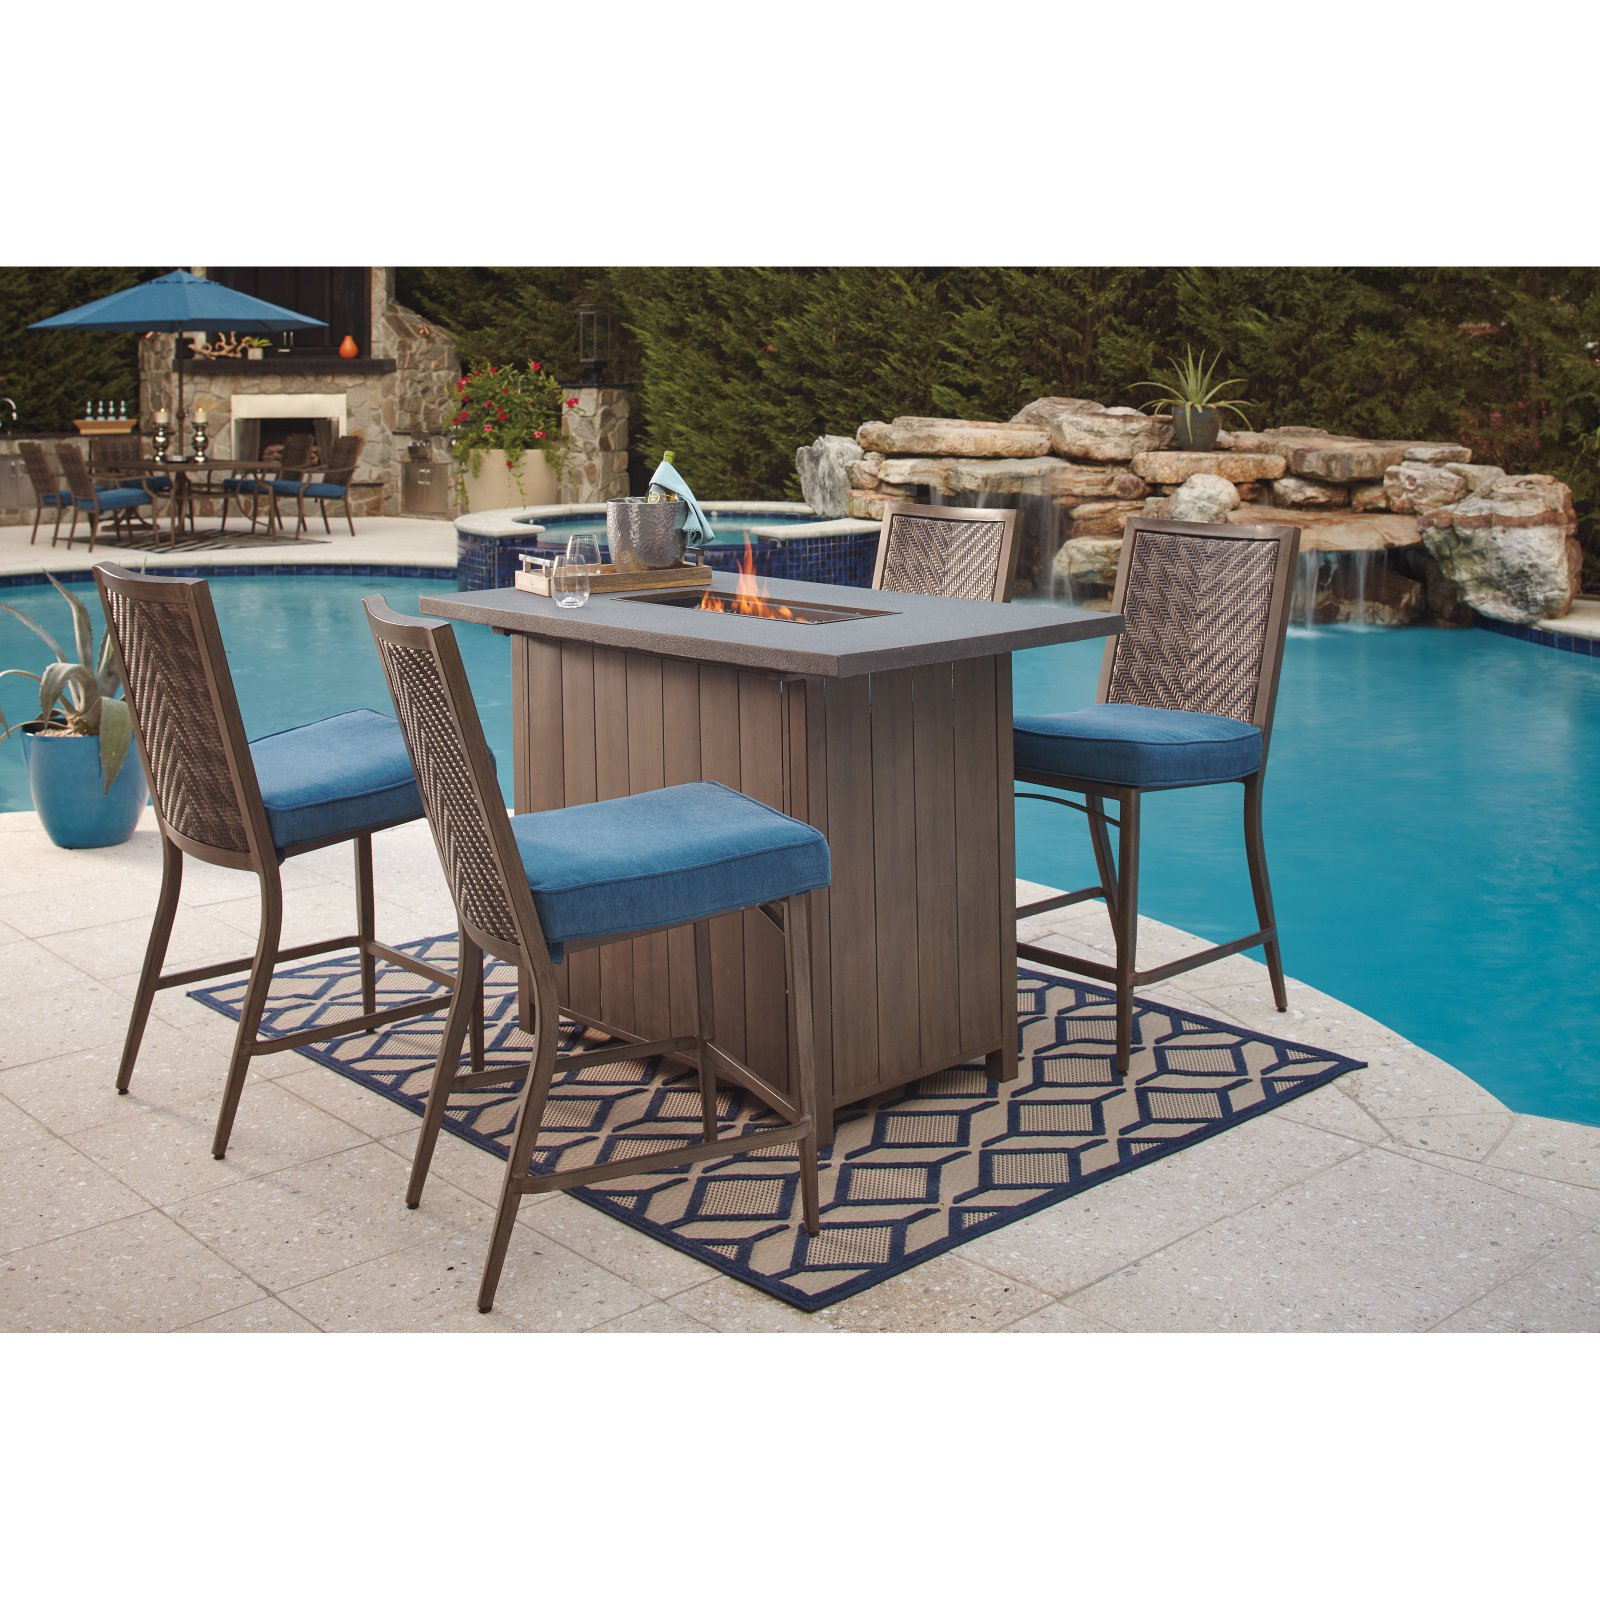 Great Signature Design By Ashley Partanna Propane Gas Rectangular Bar Height Fire  Pit Table